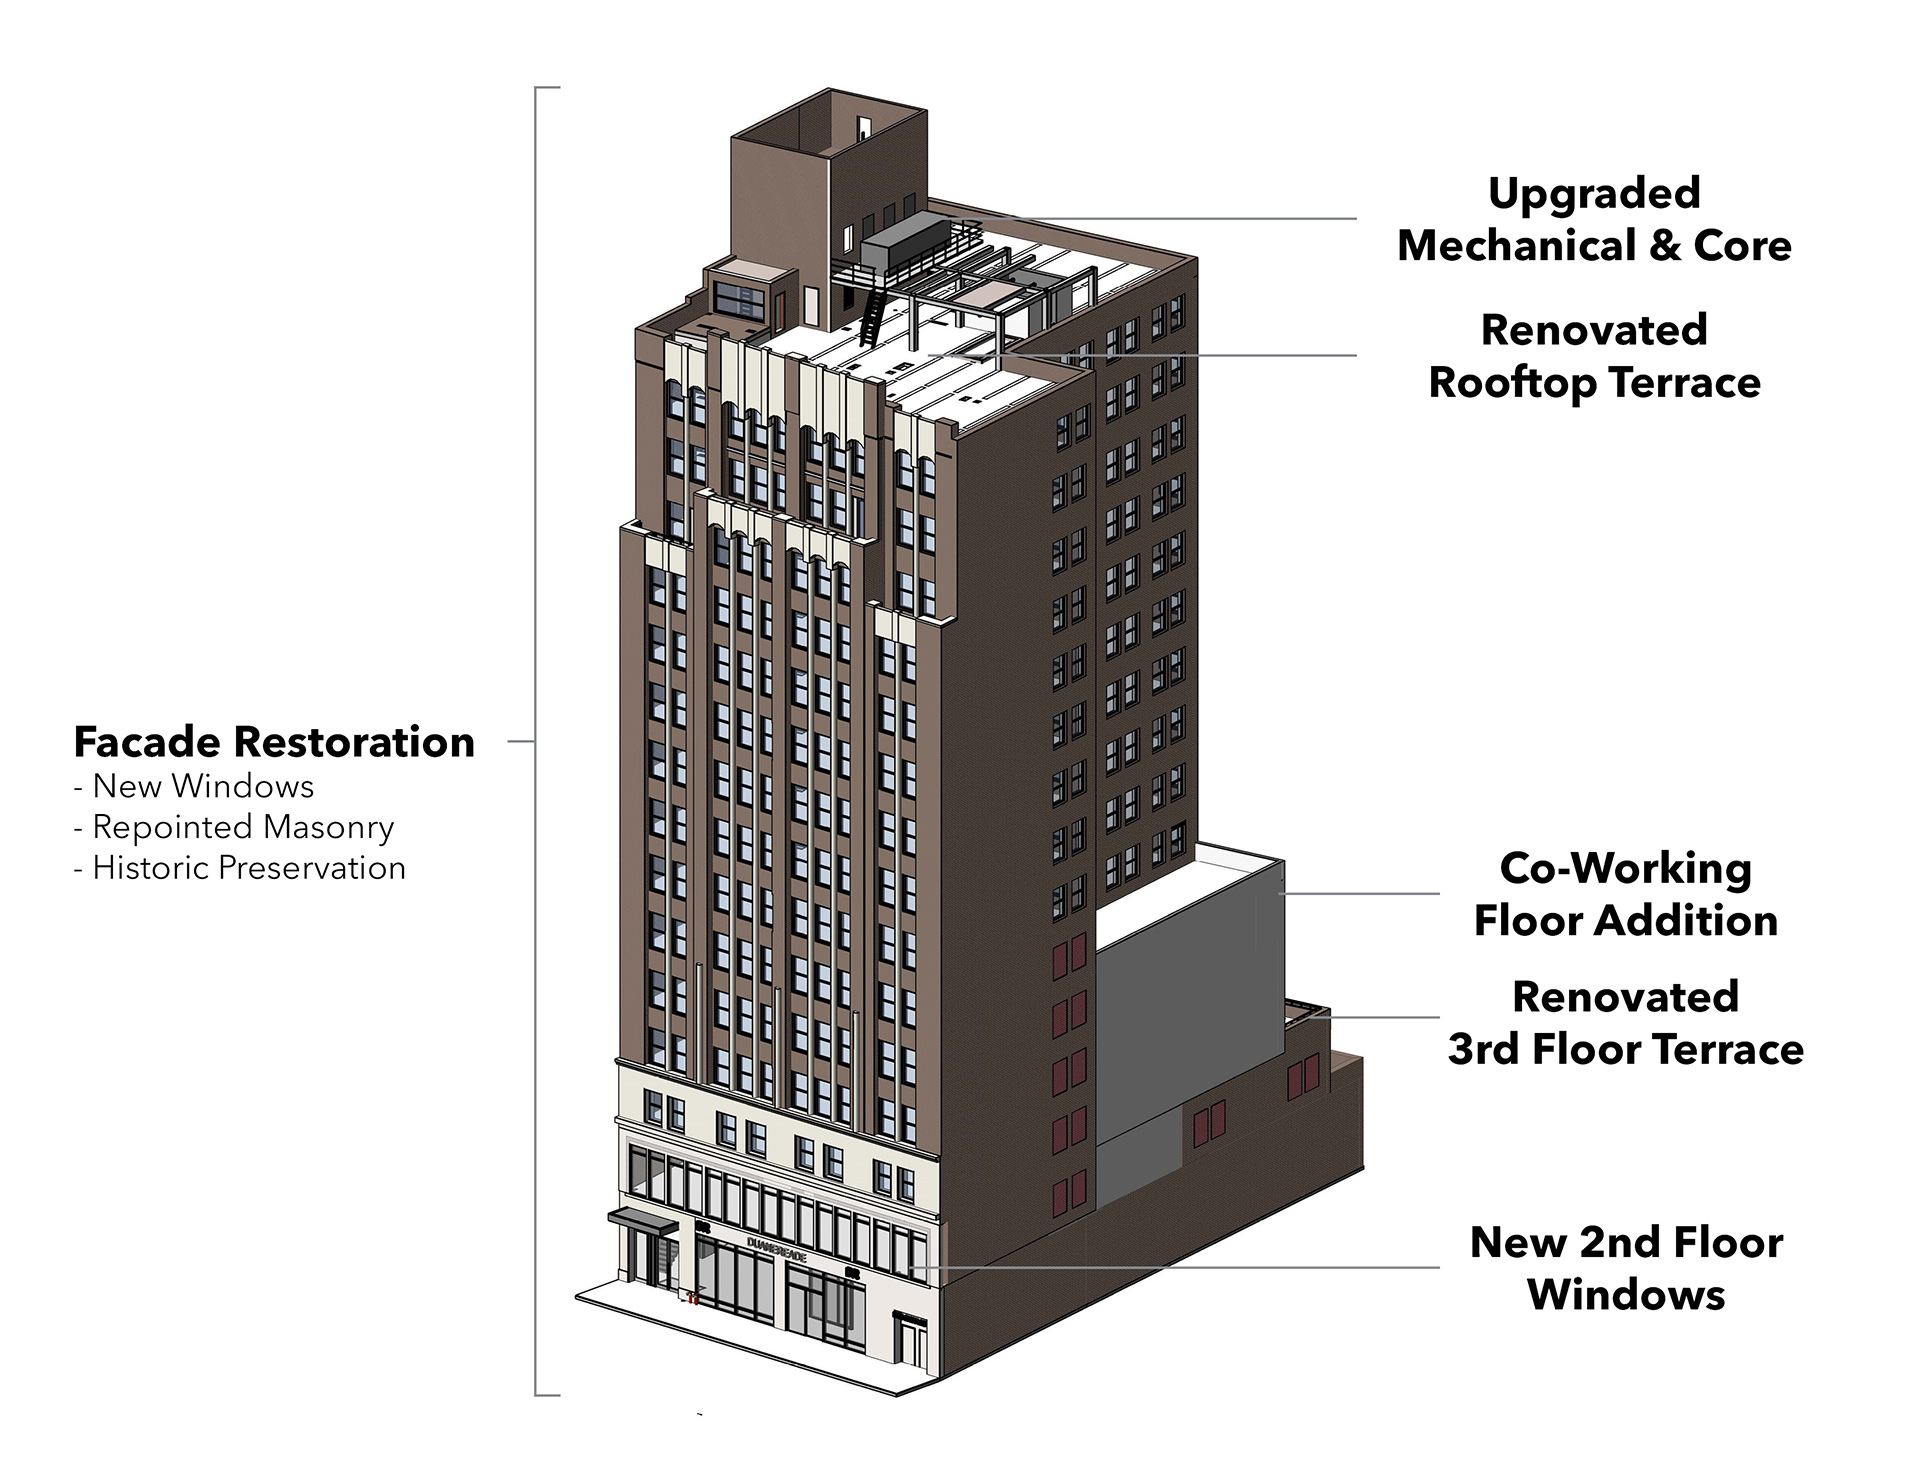 Diagram illustrating scope areas for the 17 John Street building repositioning